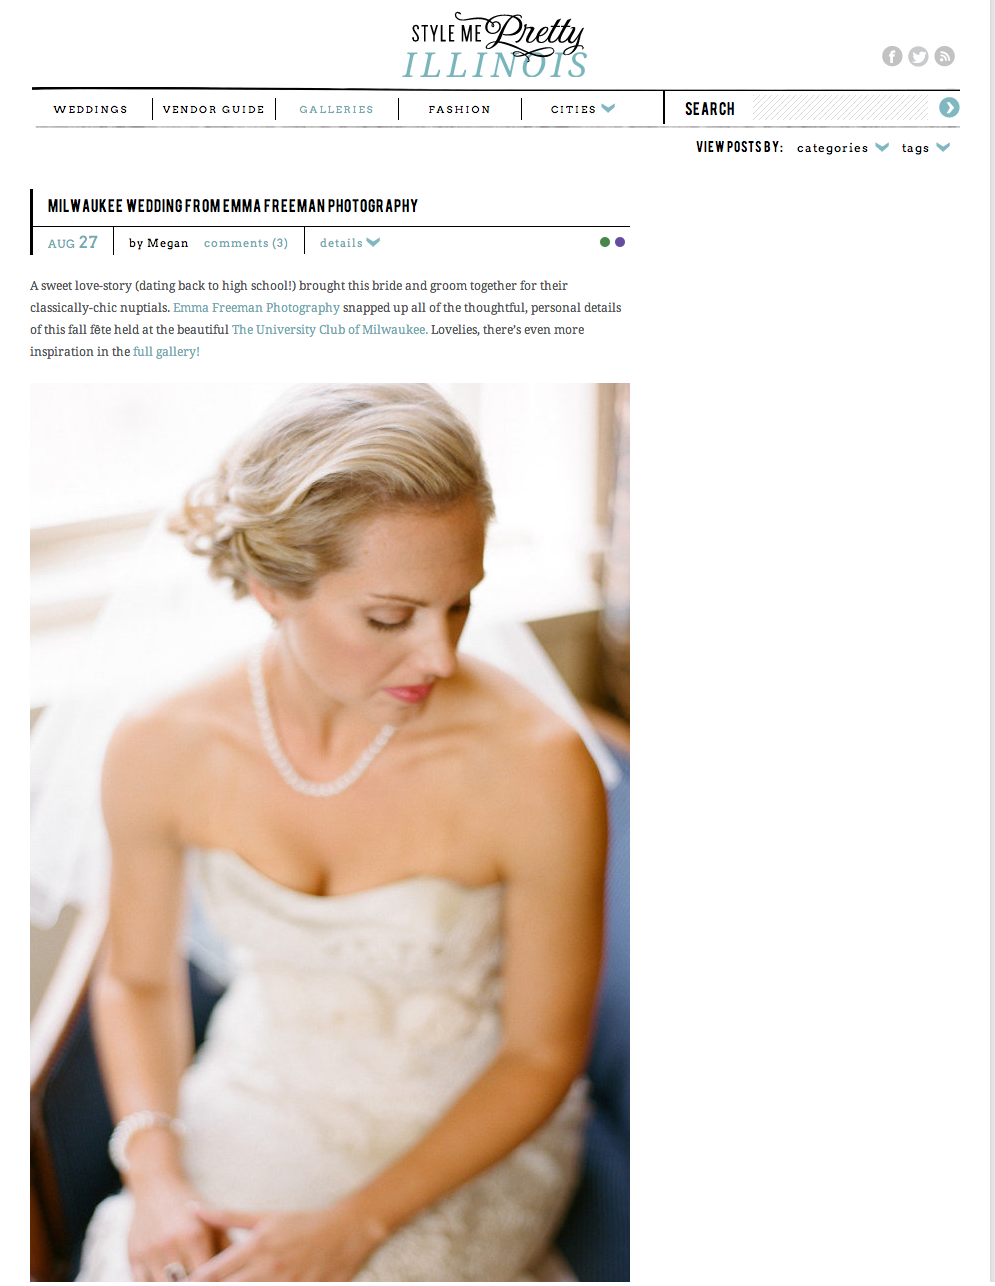 20130827_StyleMePretty_Emily&Jack-1.png